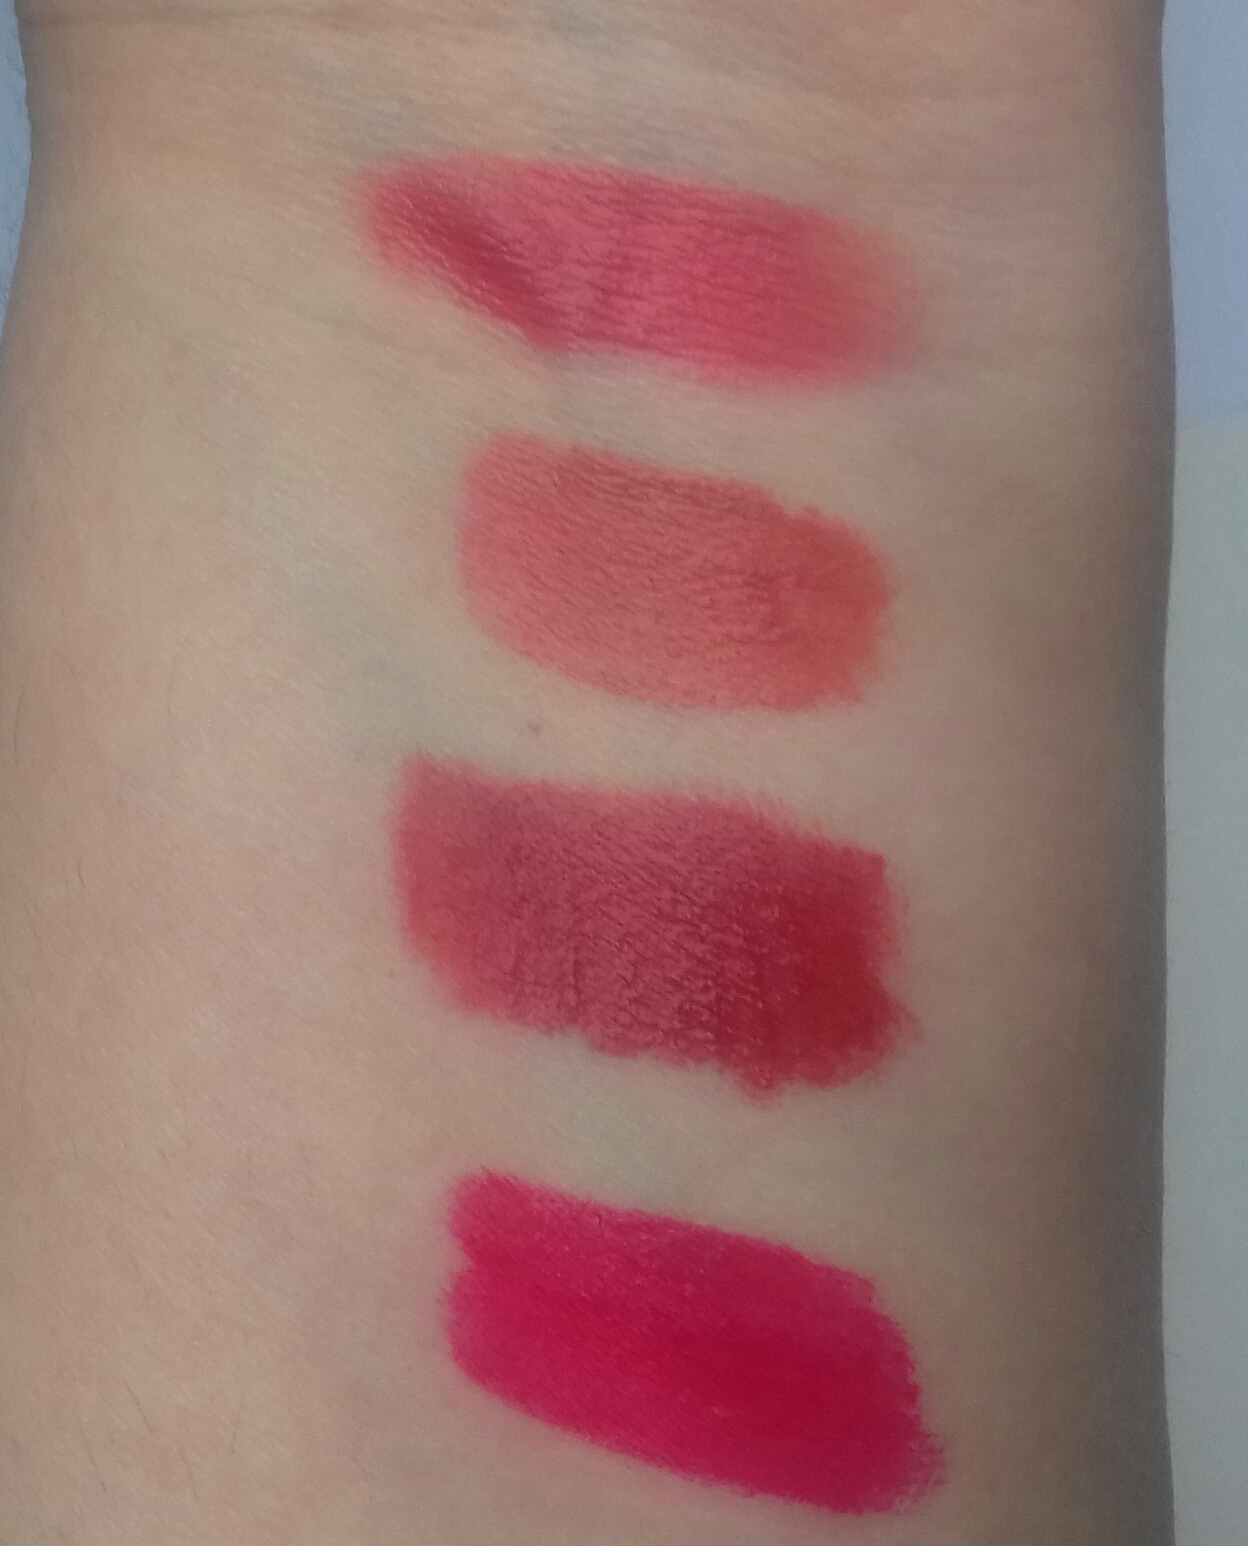 6celeb Deep Rose Peripera Peris Ink Velvet Best Buy Indonesia Airy 8g Original Swatches From Top To Bottom Of In No5 Elf Light